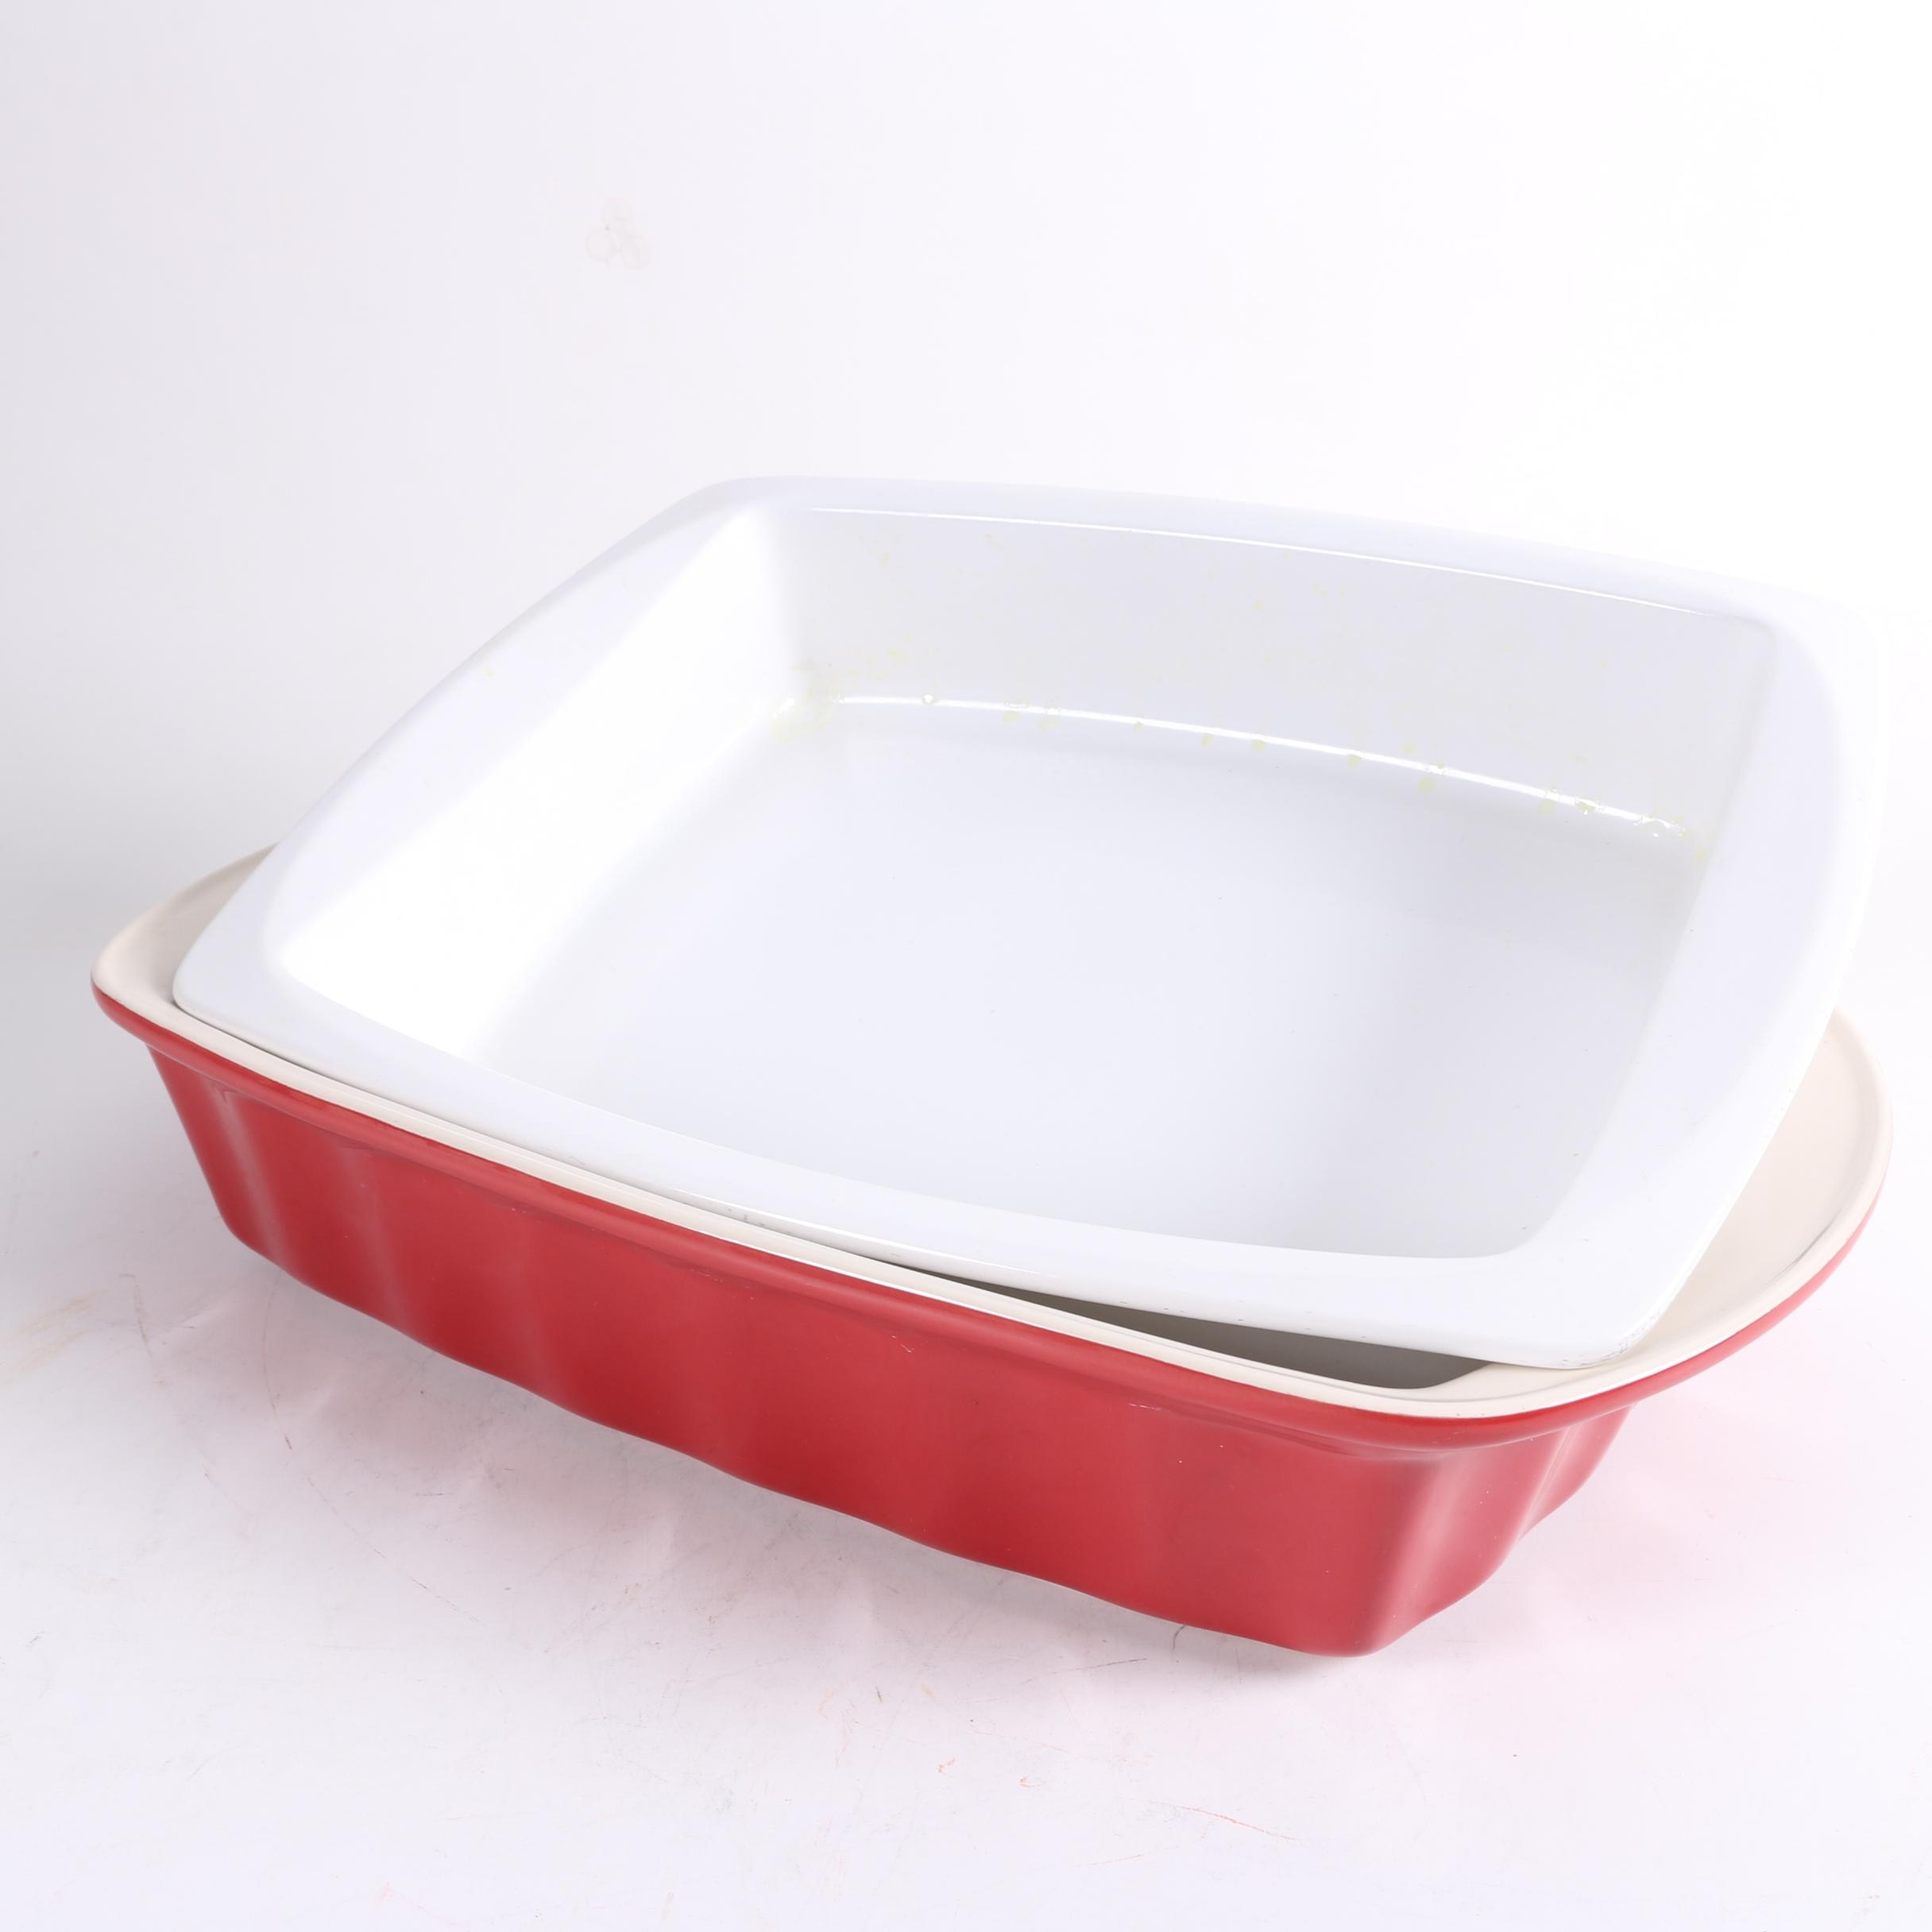 Red Good Cook Stoneware and White Vista Alegre Cook & Serve Baking Dishes